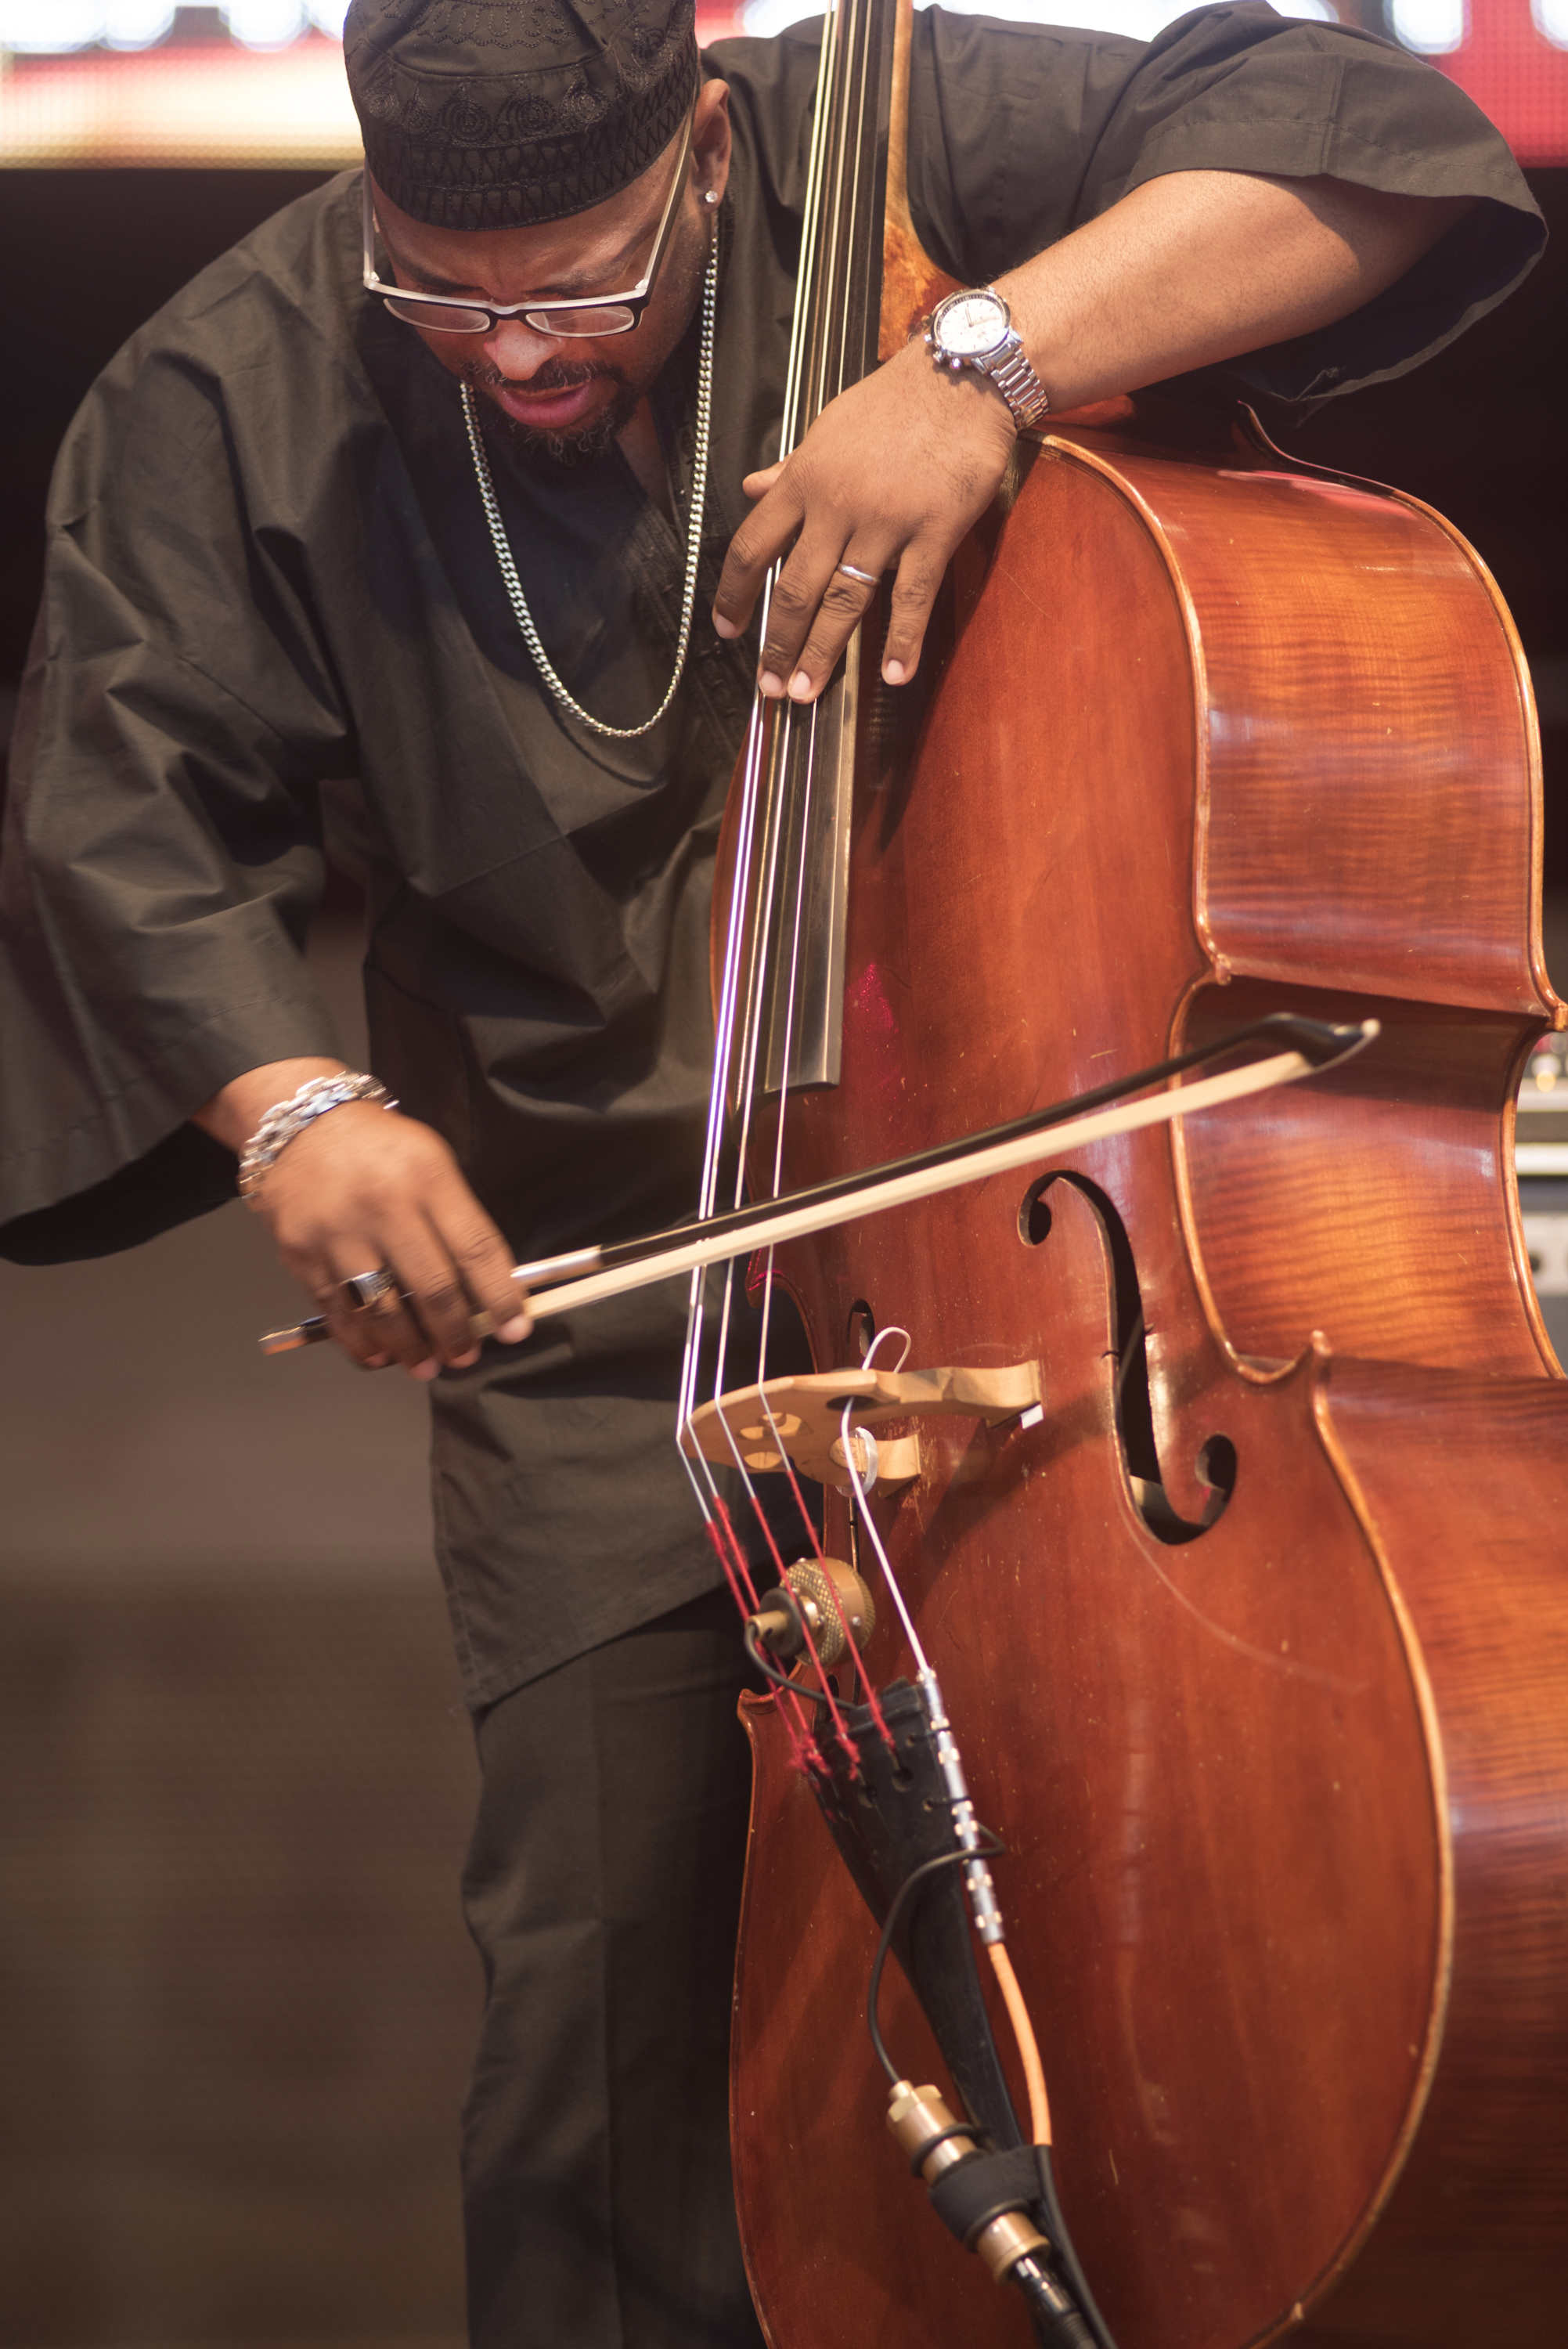 Christian McBride Performs On Stage